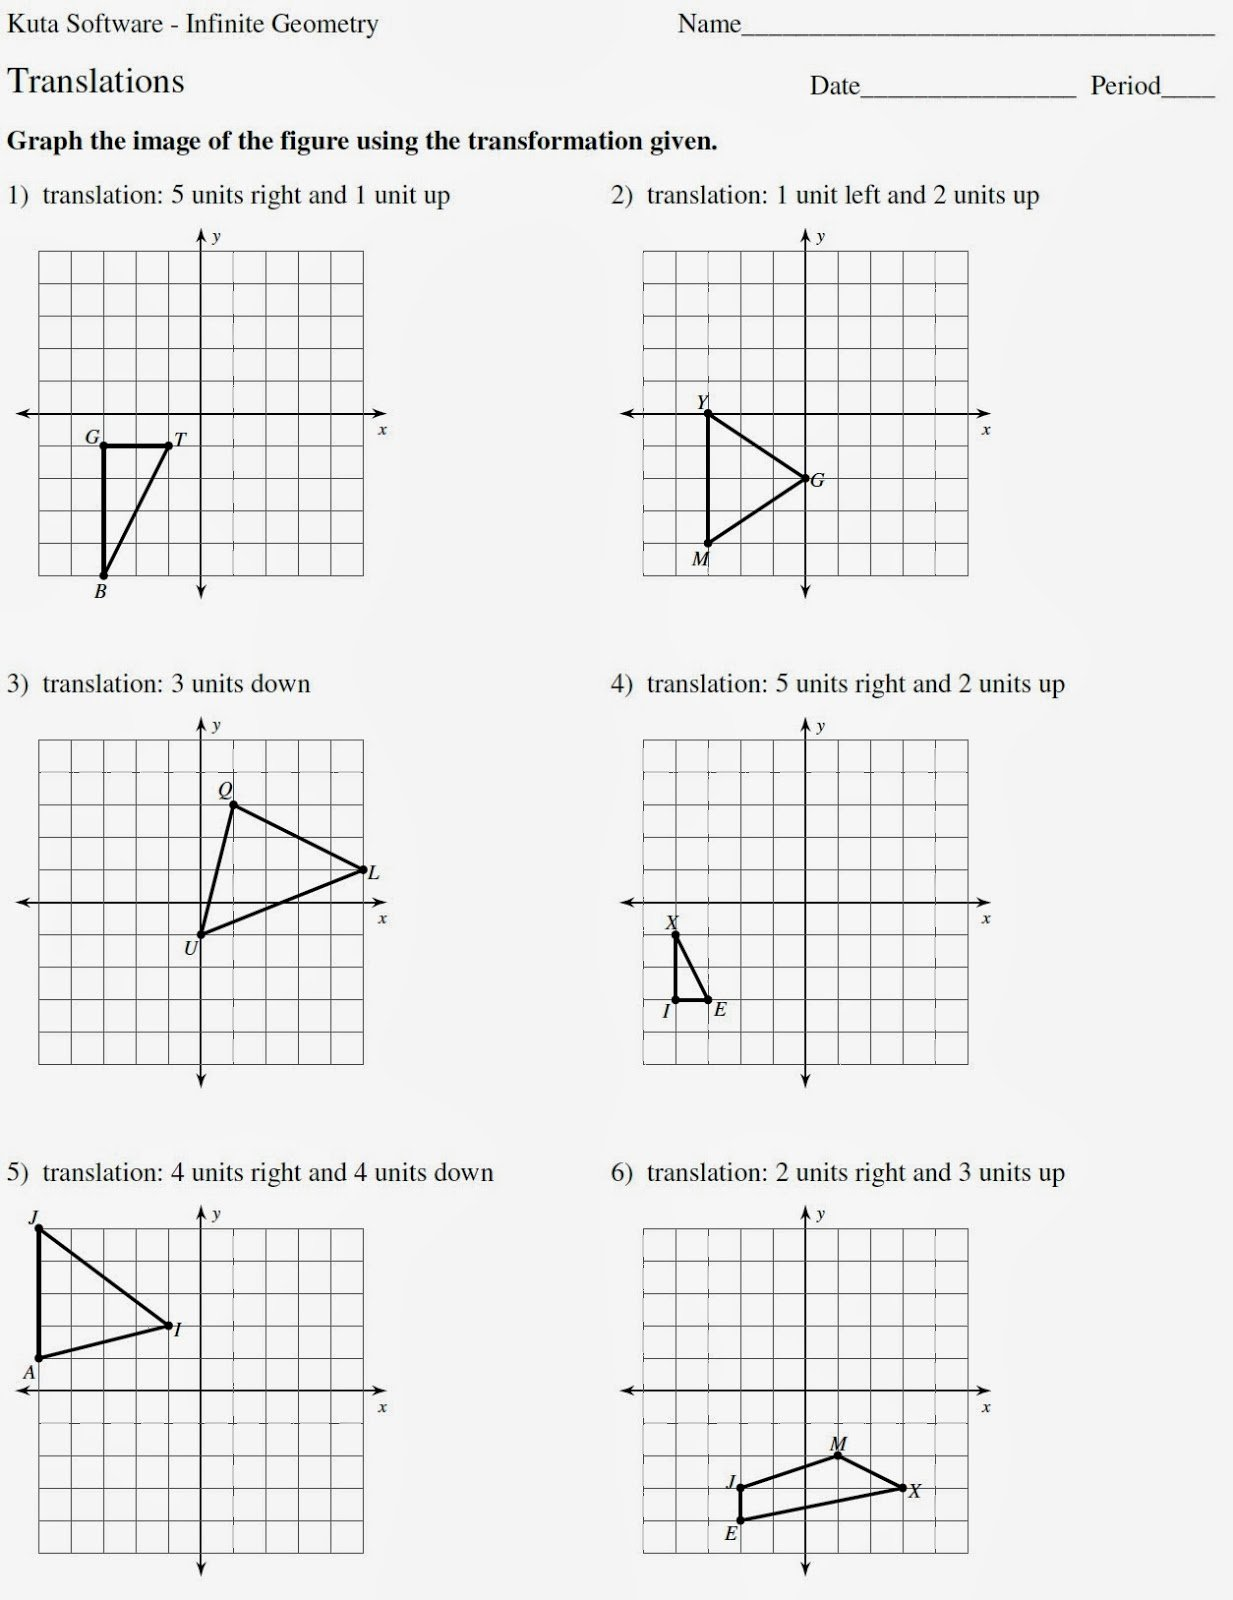 Geometry Transformations Worksheet Answers Lovely Mr Matt S Math Classes assignment Translations